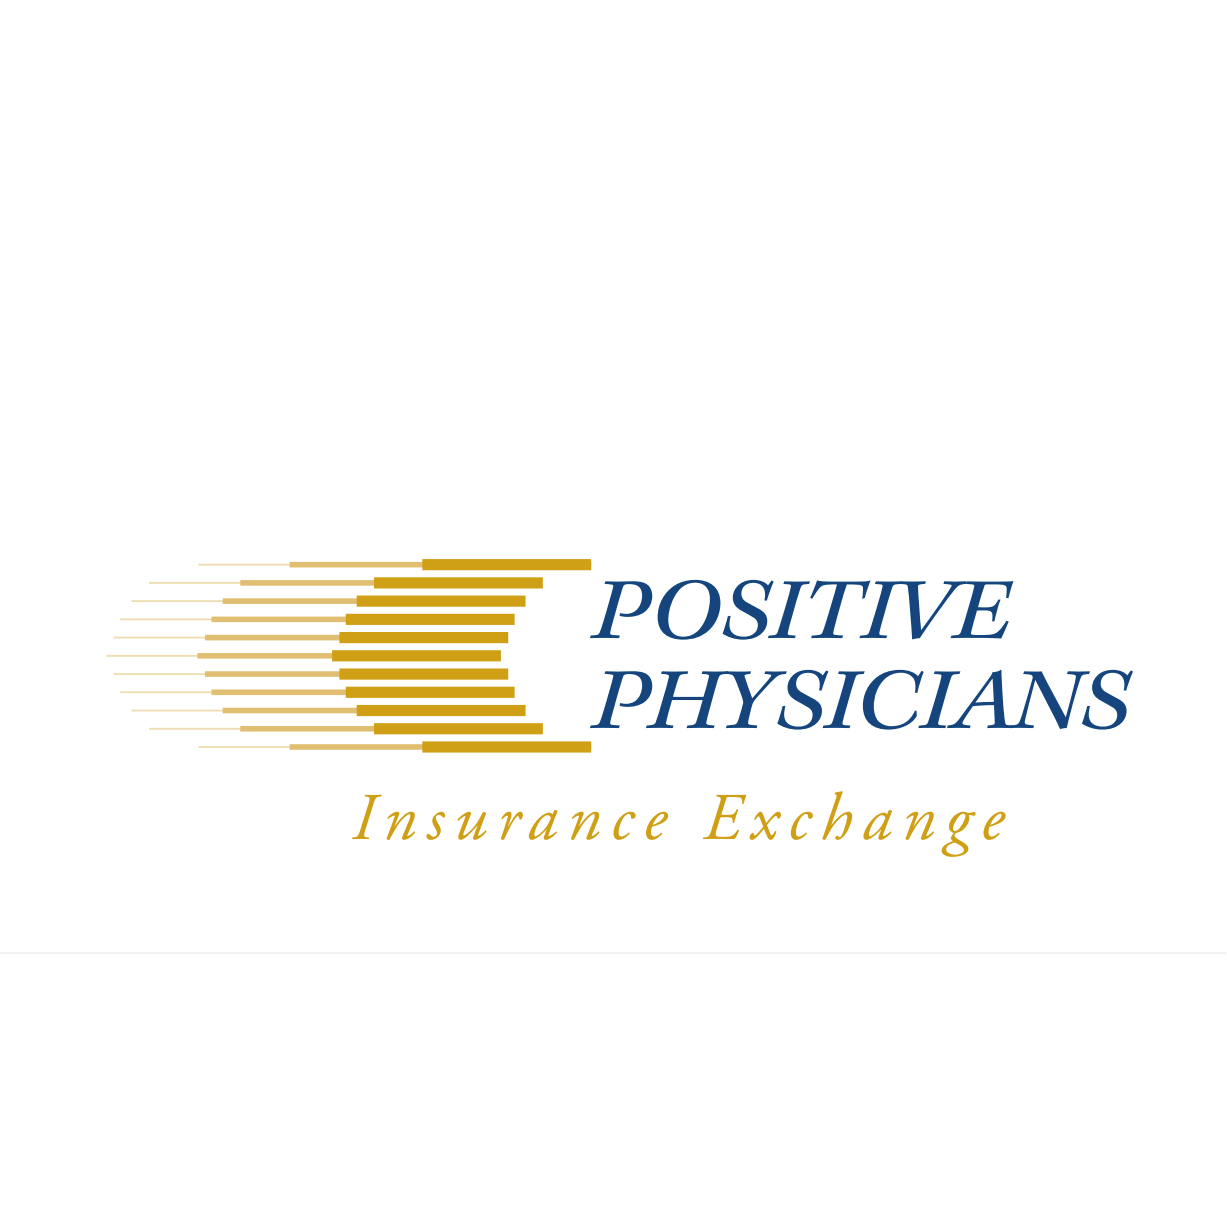 Positive Physicians Insurance Exchange